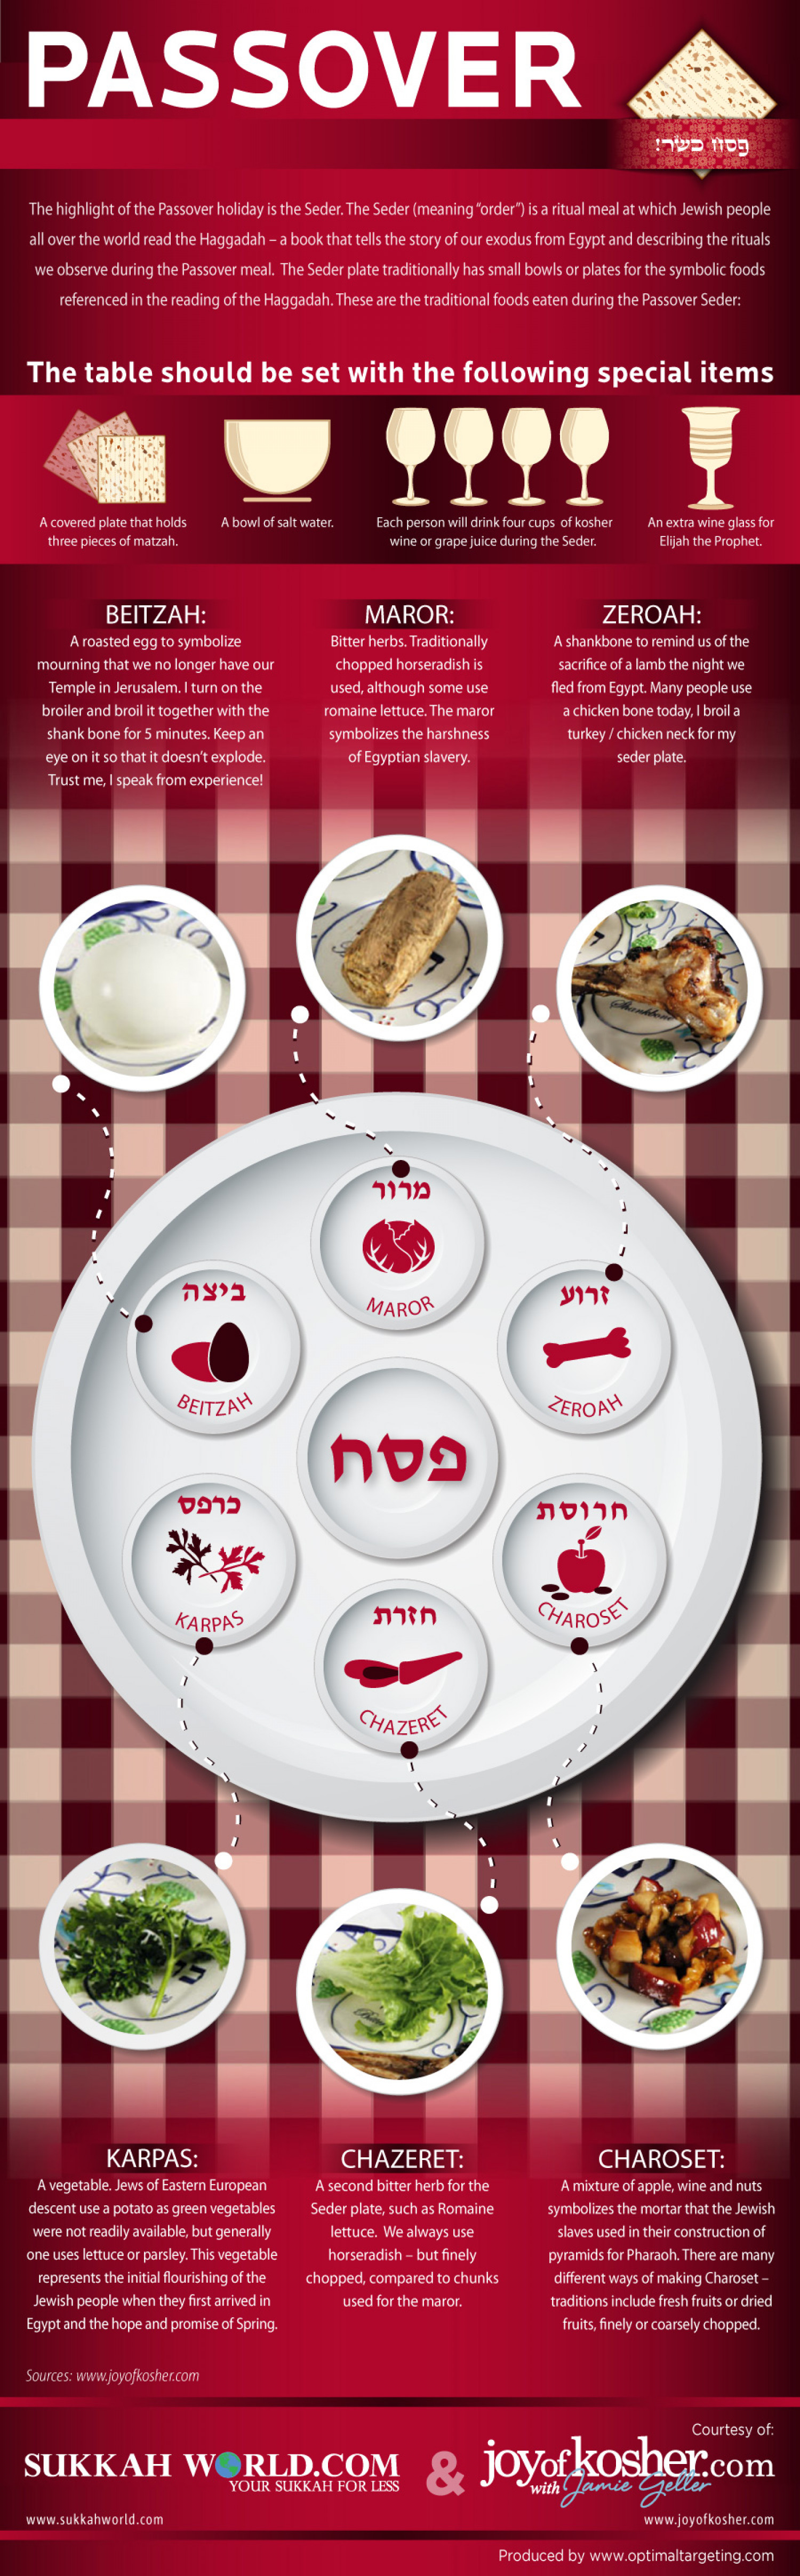 Passover Seder Plate Infographic